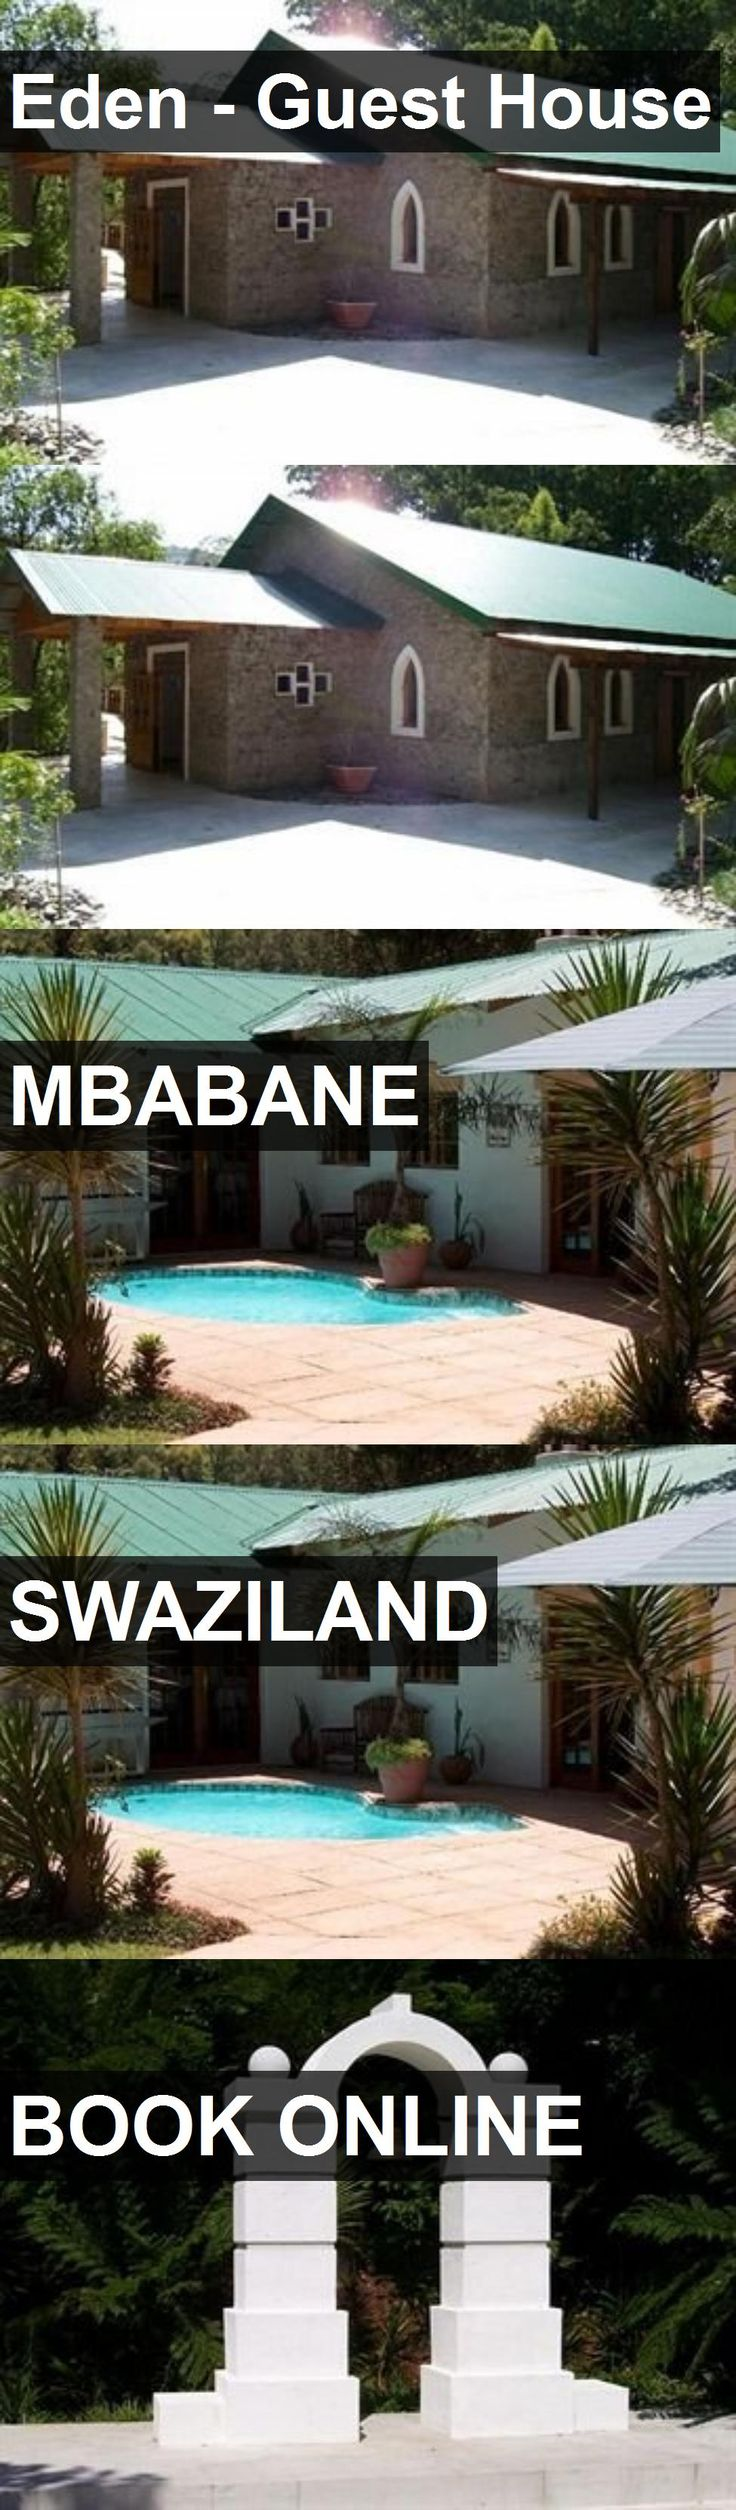 Eden - Guest House in Mbabane, Swaziland. For more information, photos, reviews and best prices please follow the link. #Swaziland #Mbabane #travel #vacation #guesthouse